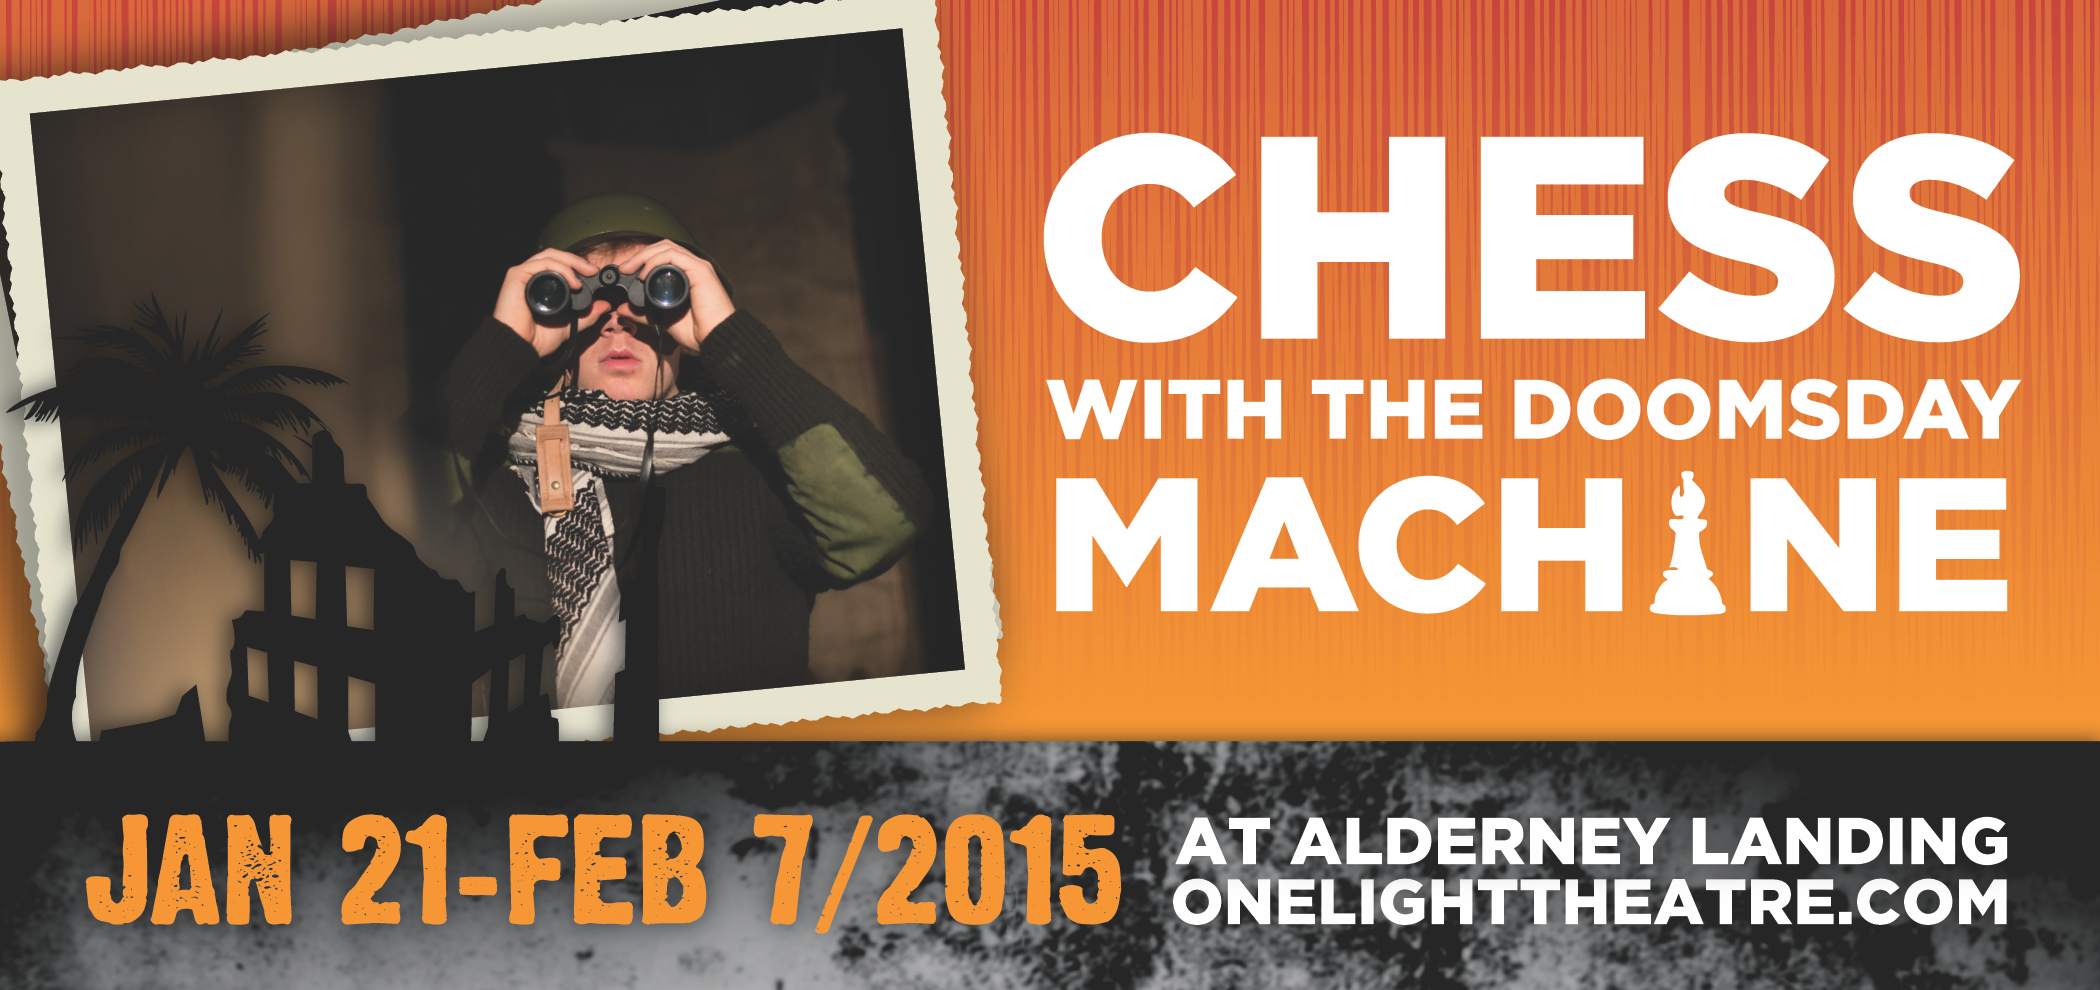 Chess With The Doomsday Machine - Jan. 21 to Feb. 7, 2015